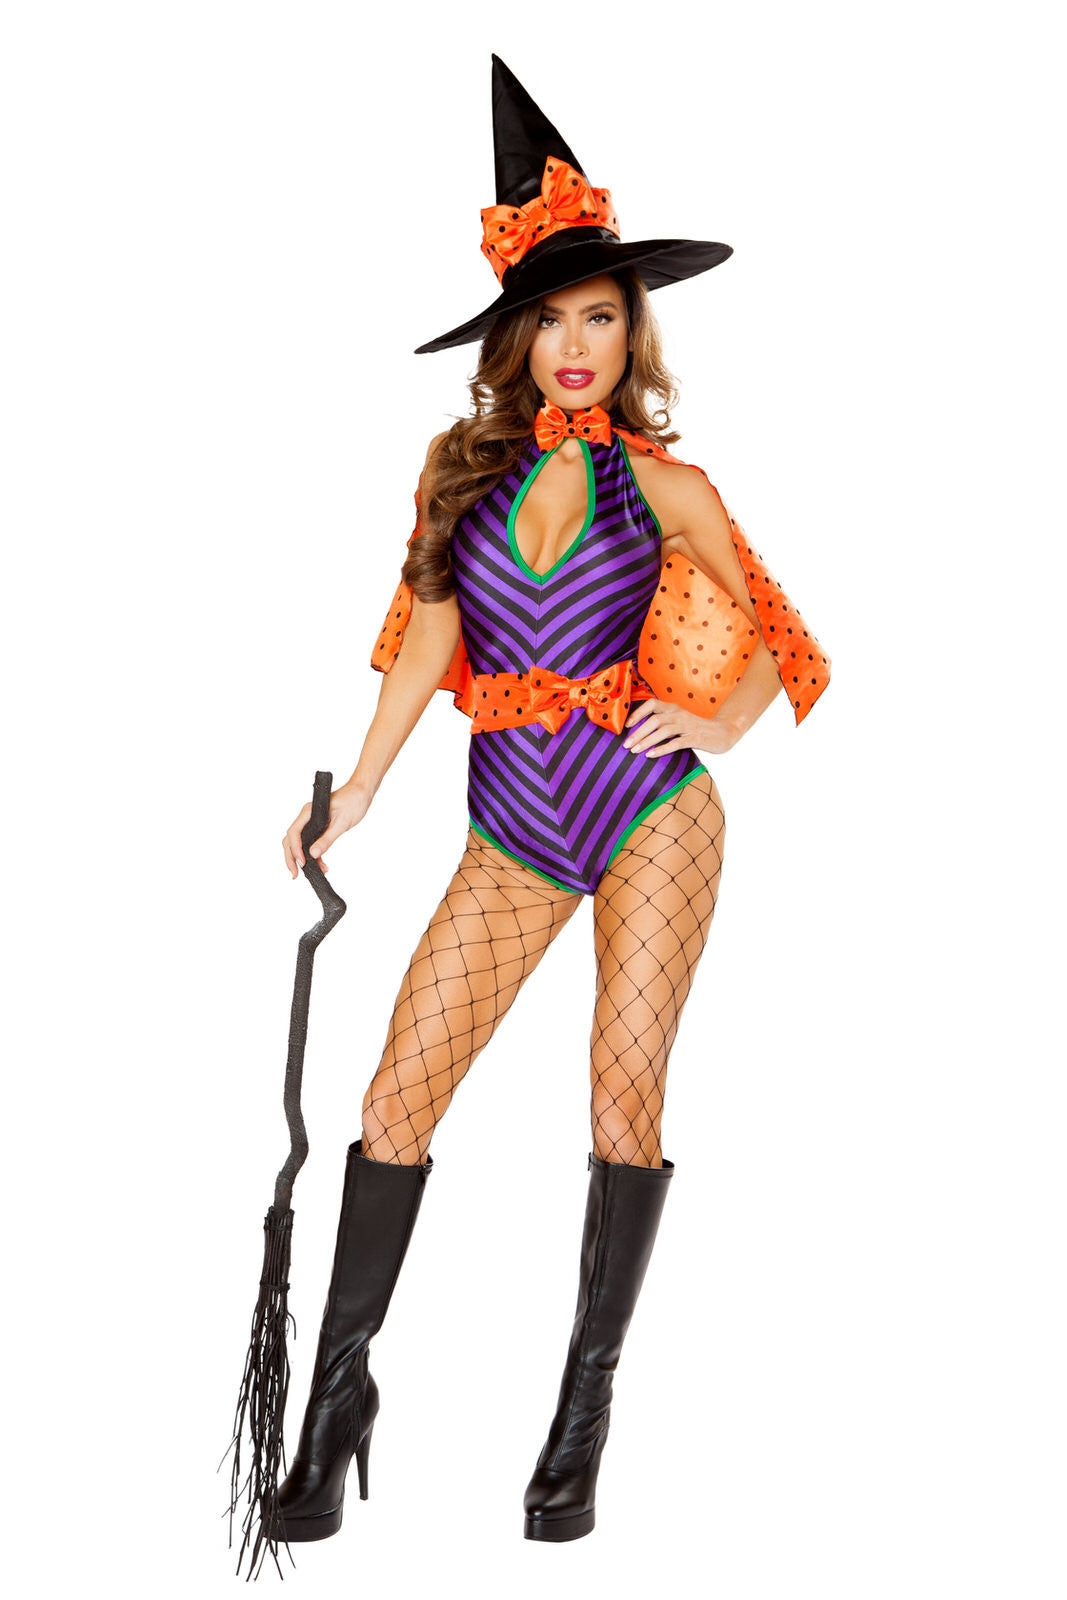 10108 - 3pc Sweet Witch ${description} | Roma Costume and Roma Confidential wholesale manufacturer of Women Apparel bulk world wide wholesale and world wide drop ship services for Adult Halloween Costumes, Sexy and Elegant Lingerie, Rave Clothing, Club wear, and Christmas Costumes. Costumes, Roma Costume, Inc., Roma Costume, Roma Confidential, Wholesale clothing, drop ship, drop ship service, Wholesale Lingerie, Wholesale Adult Halloween Costumes, Rave Clothing, EDM Clothing, Festival Wear, Christmas Costumes, Clubwear, Club wear.